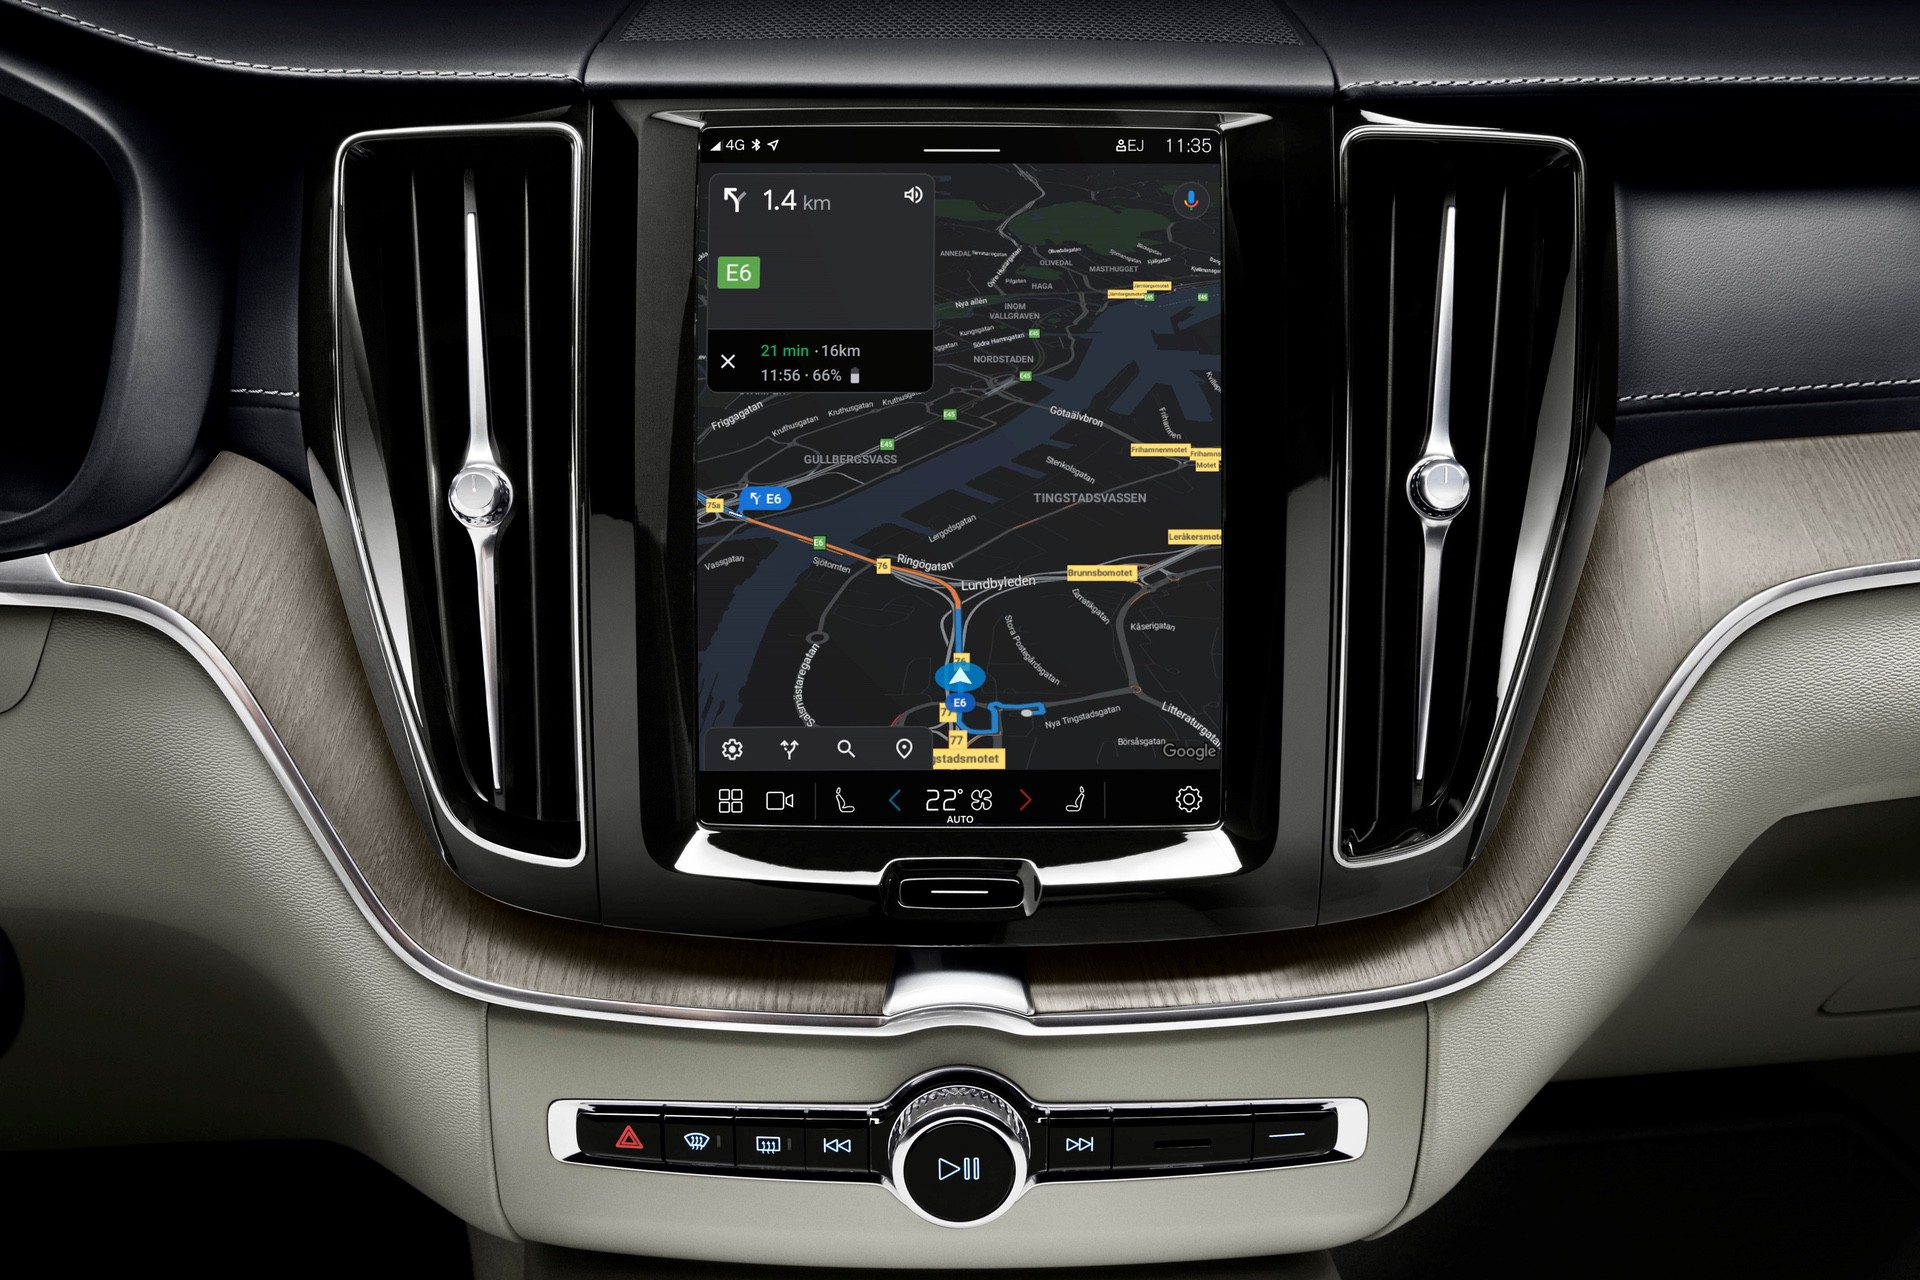 279243_Volvo_Cars_brings_infotainment_system_with_Google_built_in_to_more_models